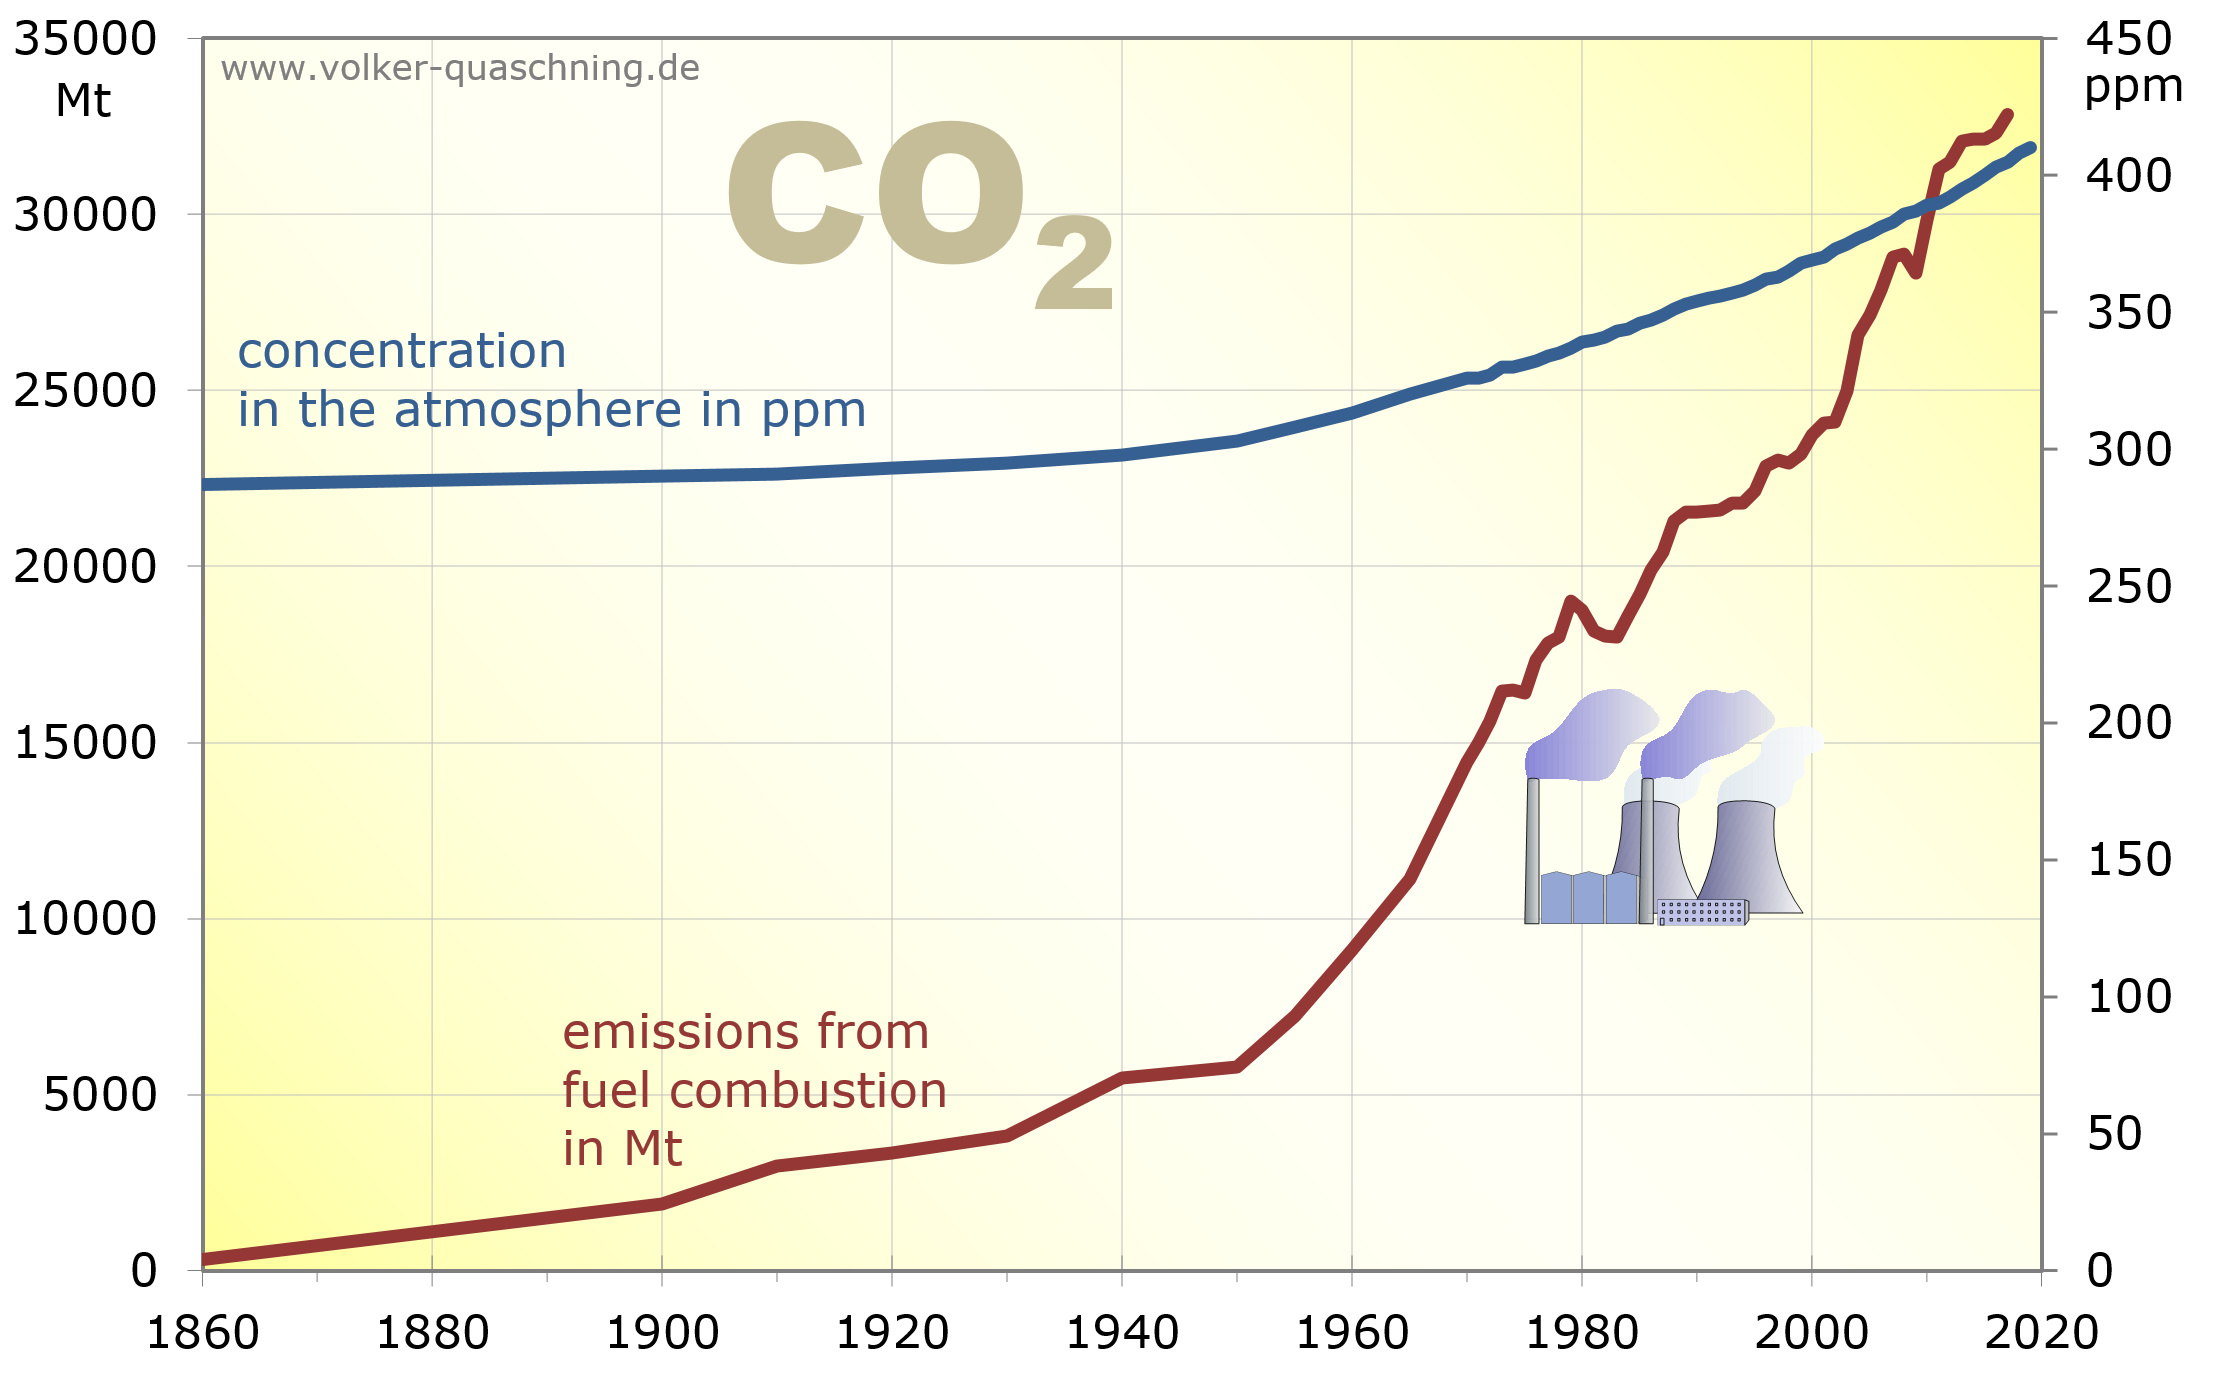 Development of global CO2 emissions from fuel combustion